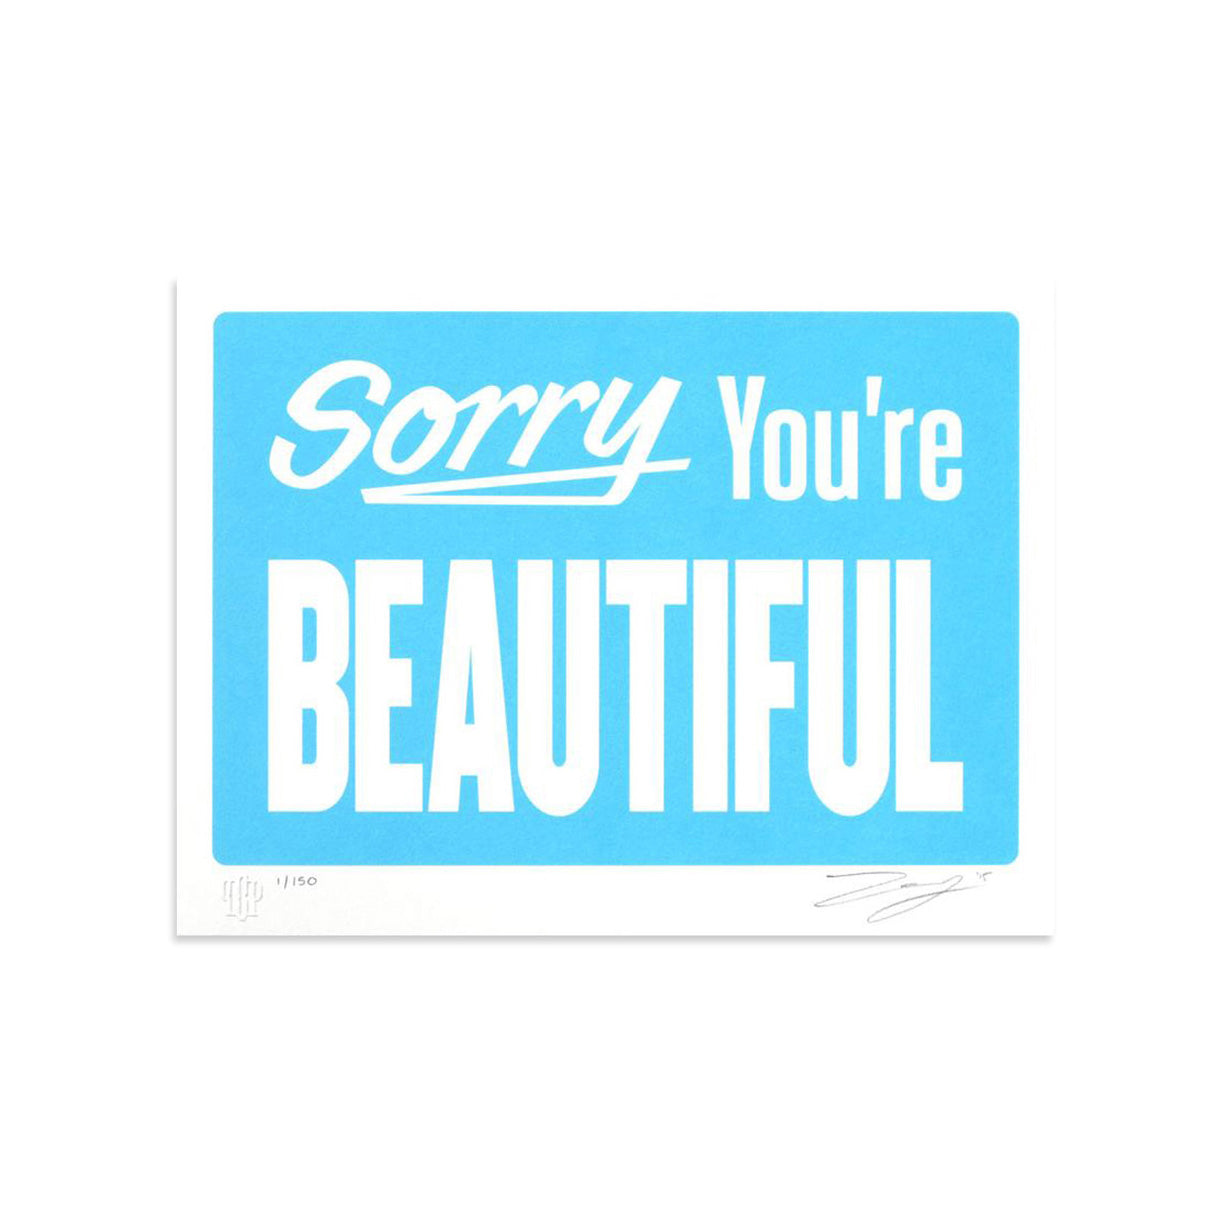 Sorry You're Beautiful - Pastel Blue by Michael Coleman-Print-Poster Child Prints